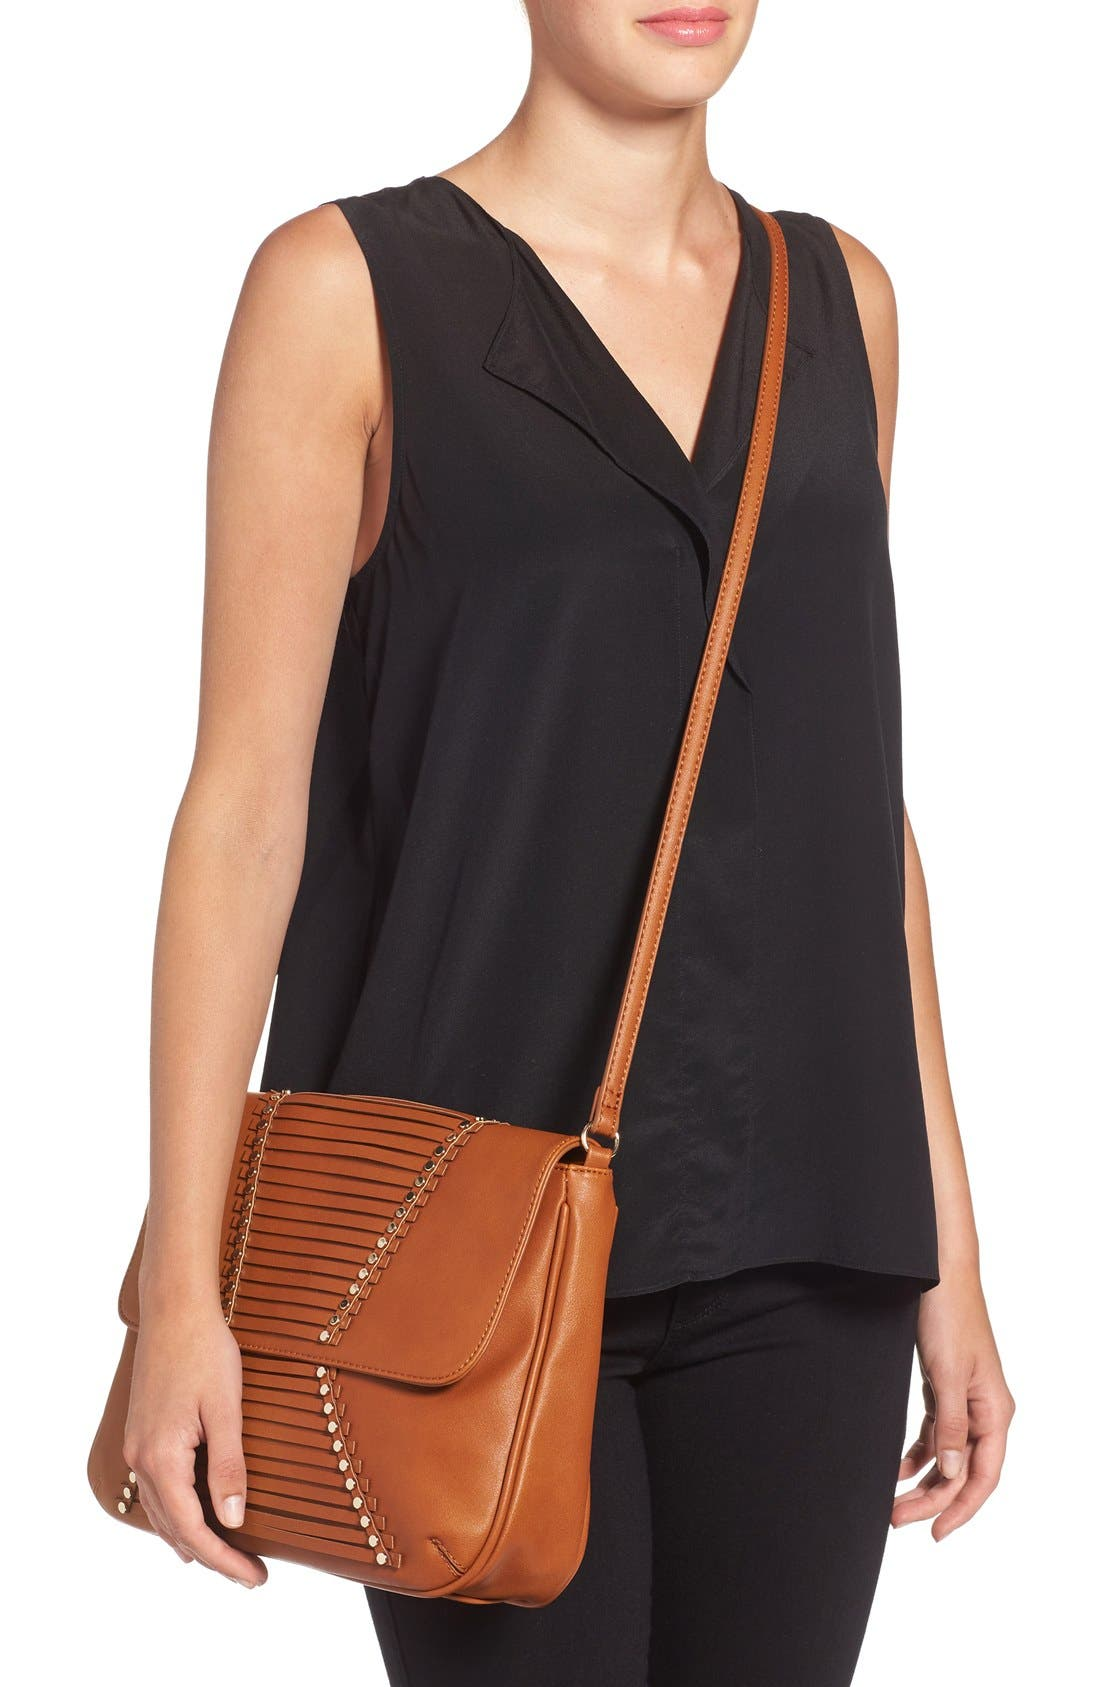 'Larissa' Studded Flap Faux Leather Crossbody Bag,                             Alternate thumbnail 2, color,                             Cognac